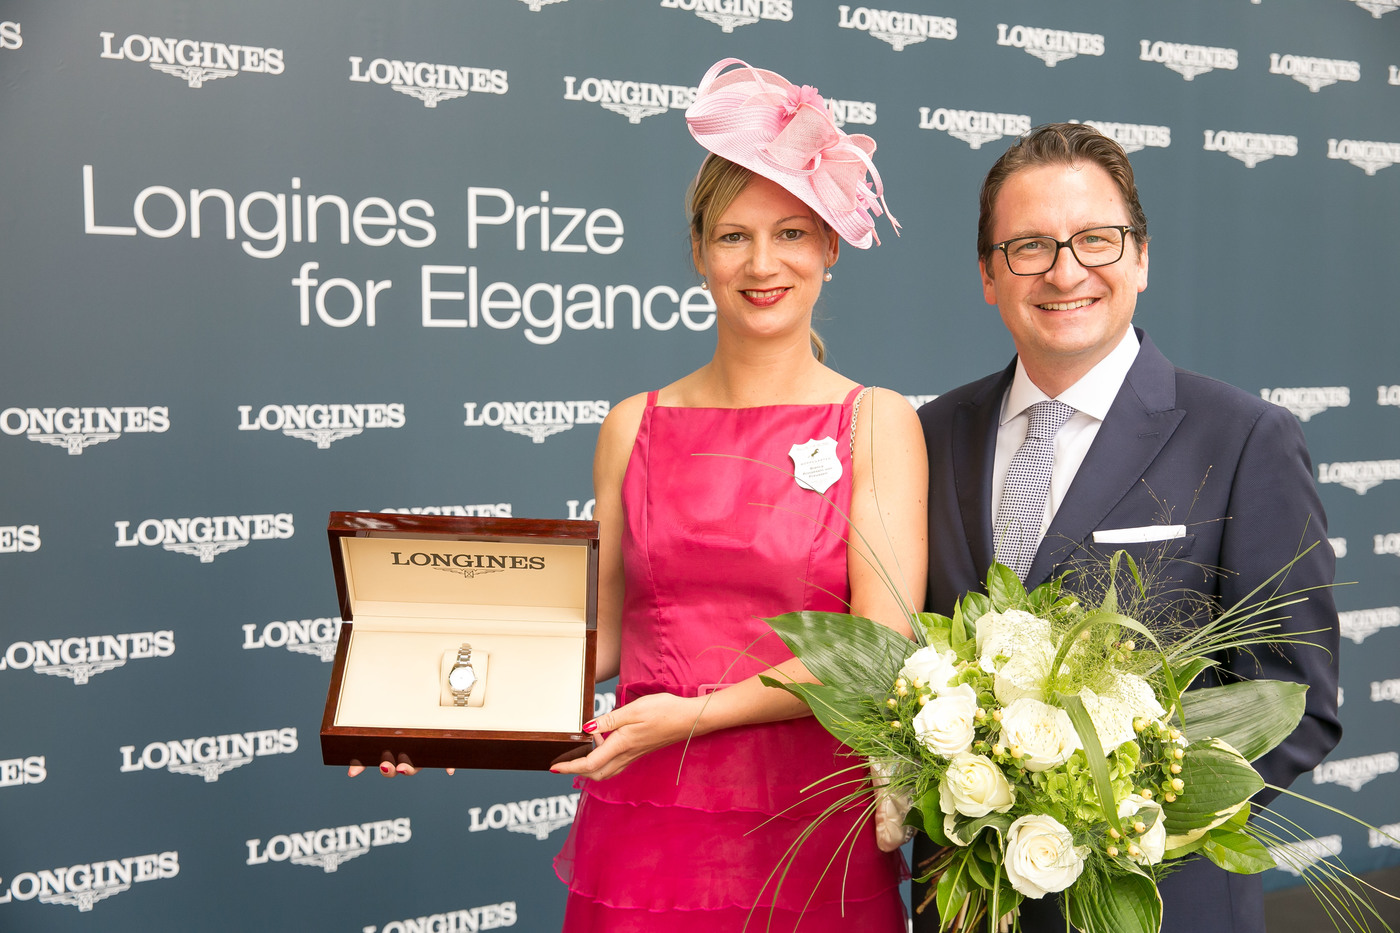 Longines Flat Racing Event: Longines launched its new second screen application during the Longines Grosser Preis von Berlin won by Adrie de Vries riding Dschingis Secret 5